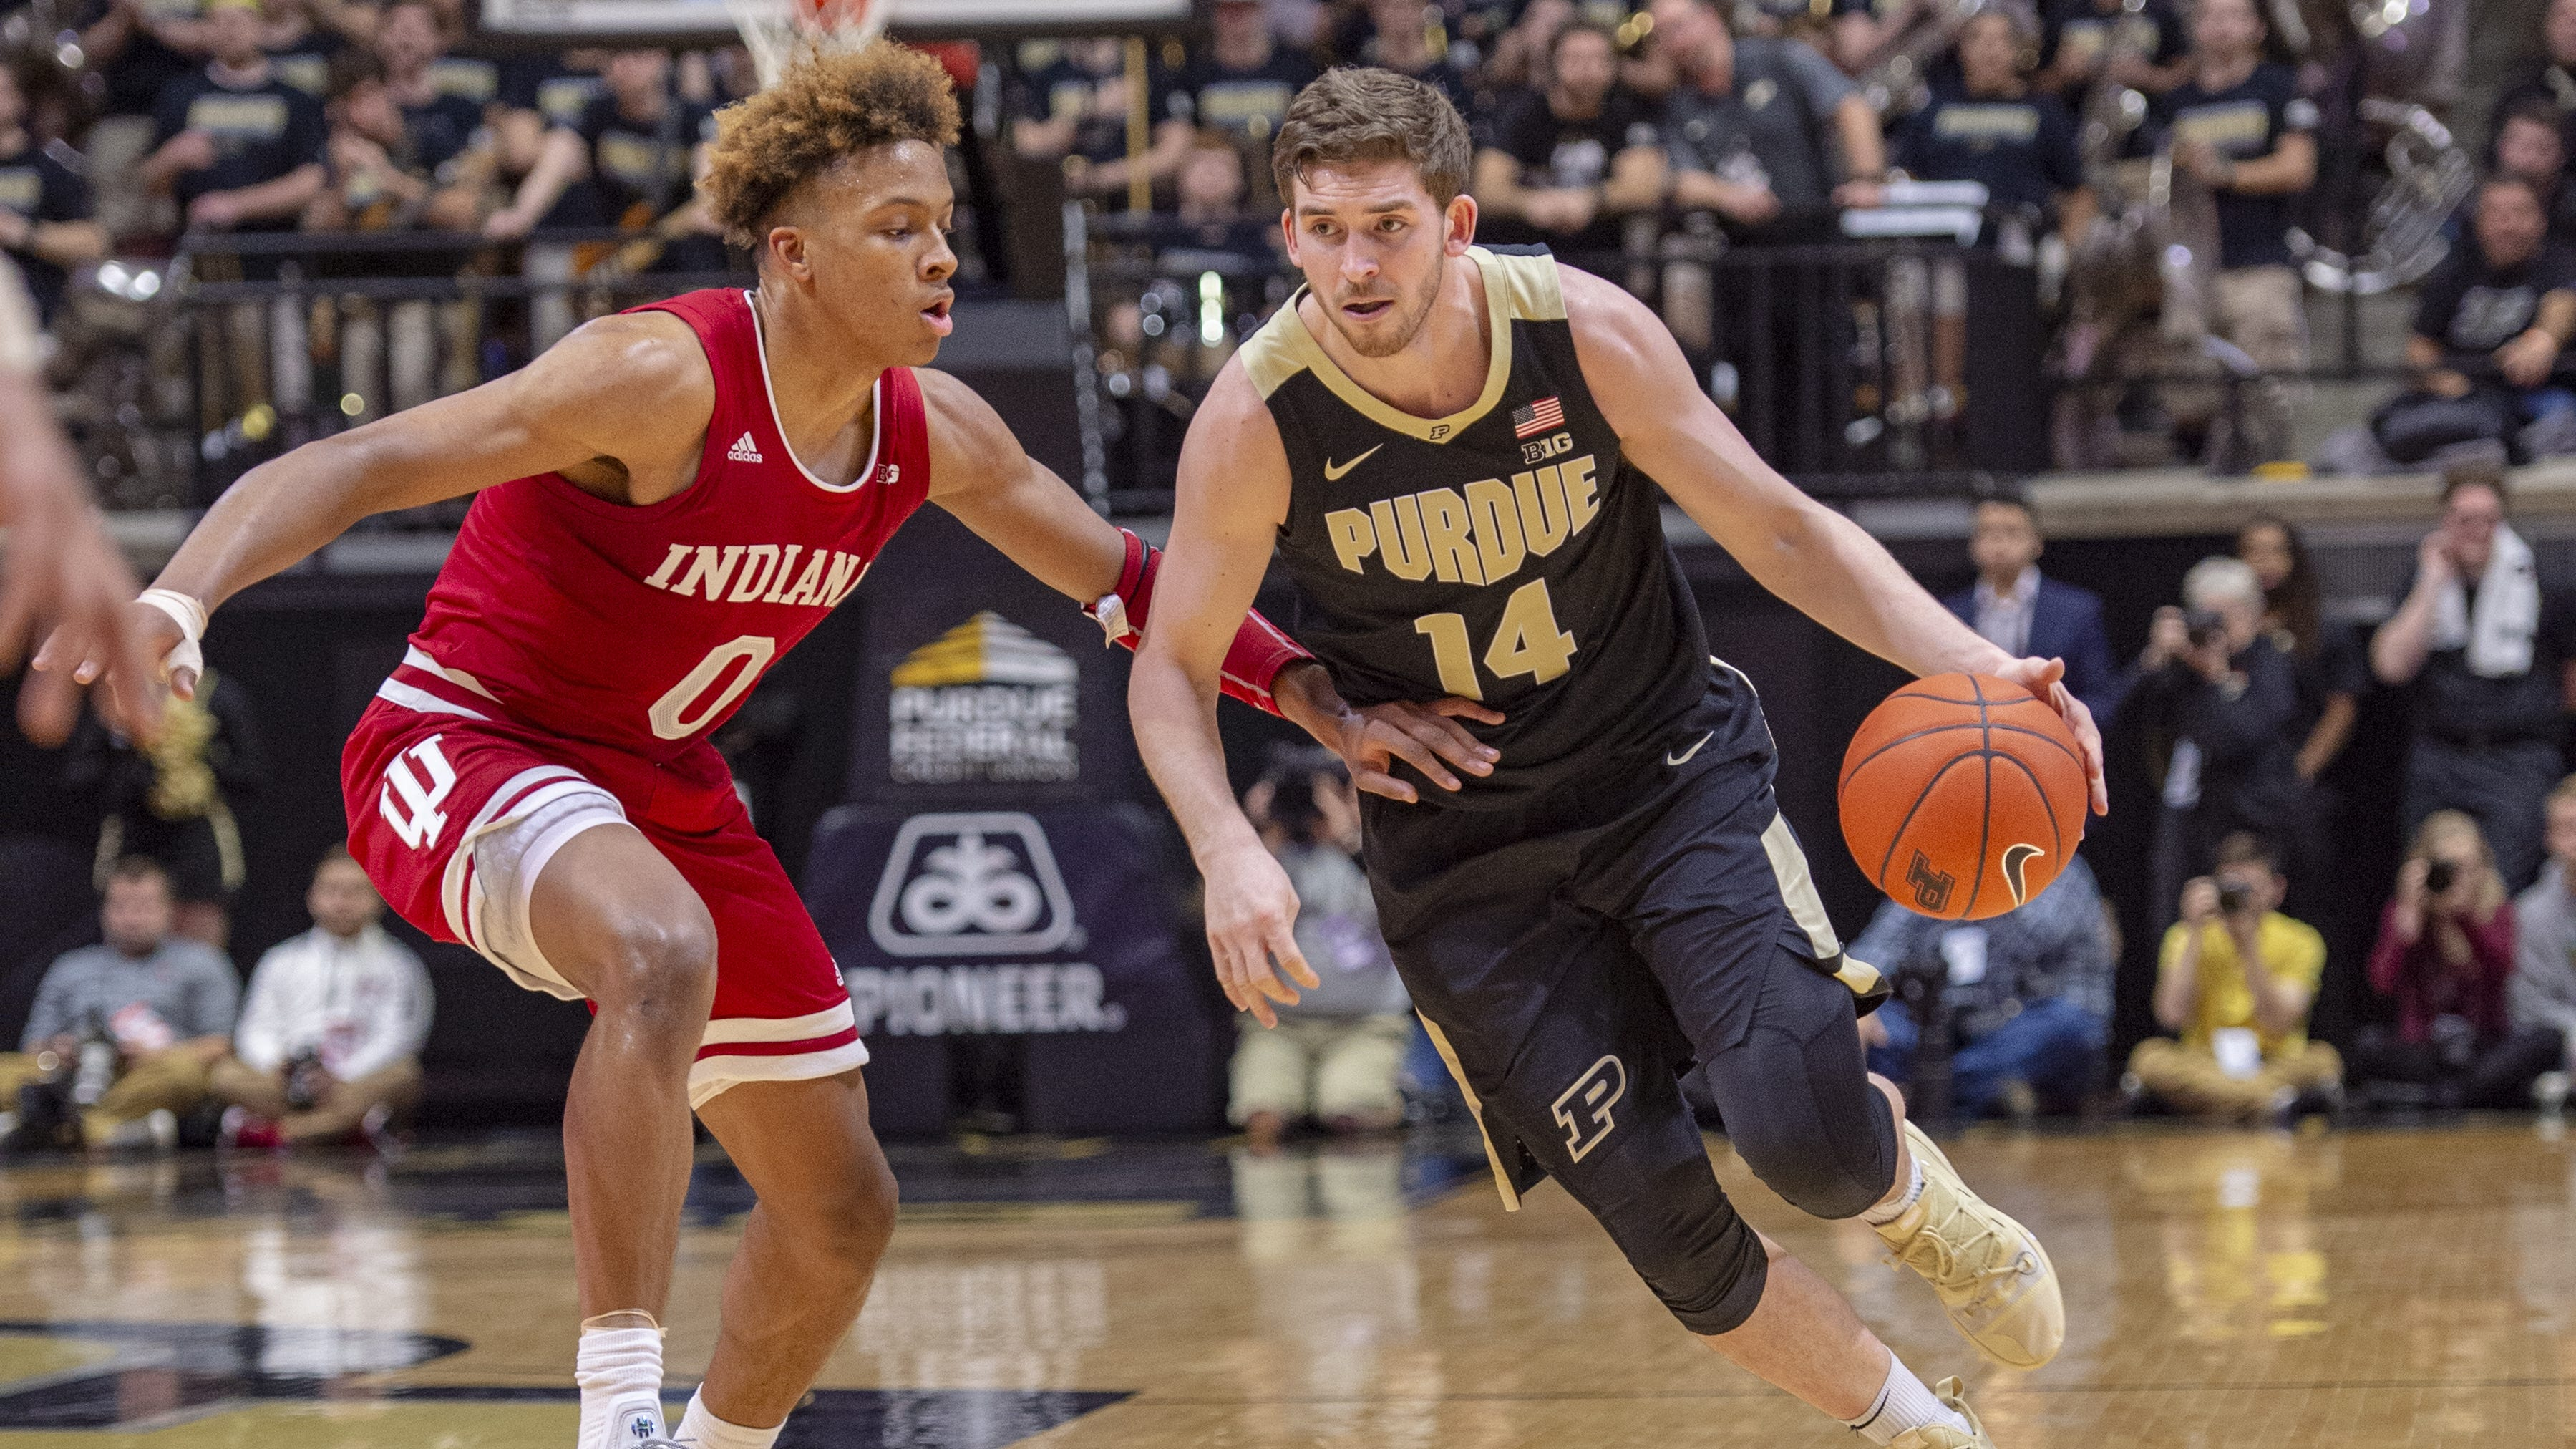 Purdue guard Ryan Cline (14) makes a move around Hoosiers guard Romeo Langford (0) in the Boilers' 70-55 earlier this season.